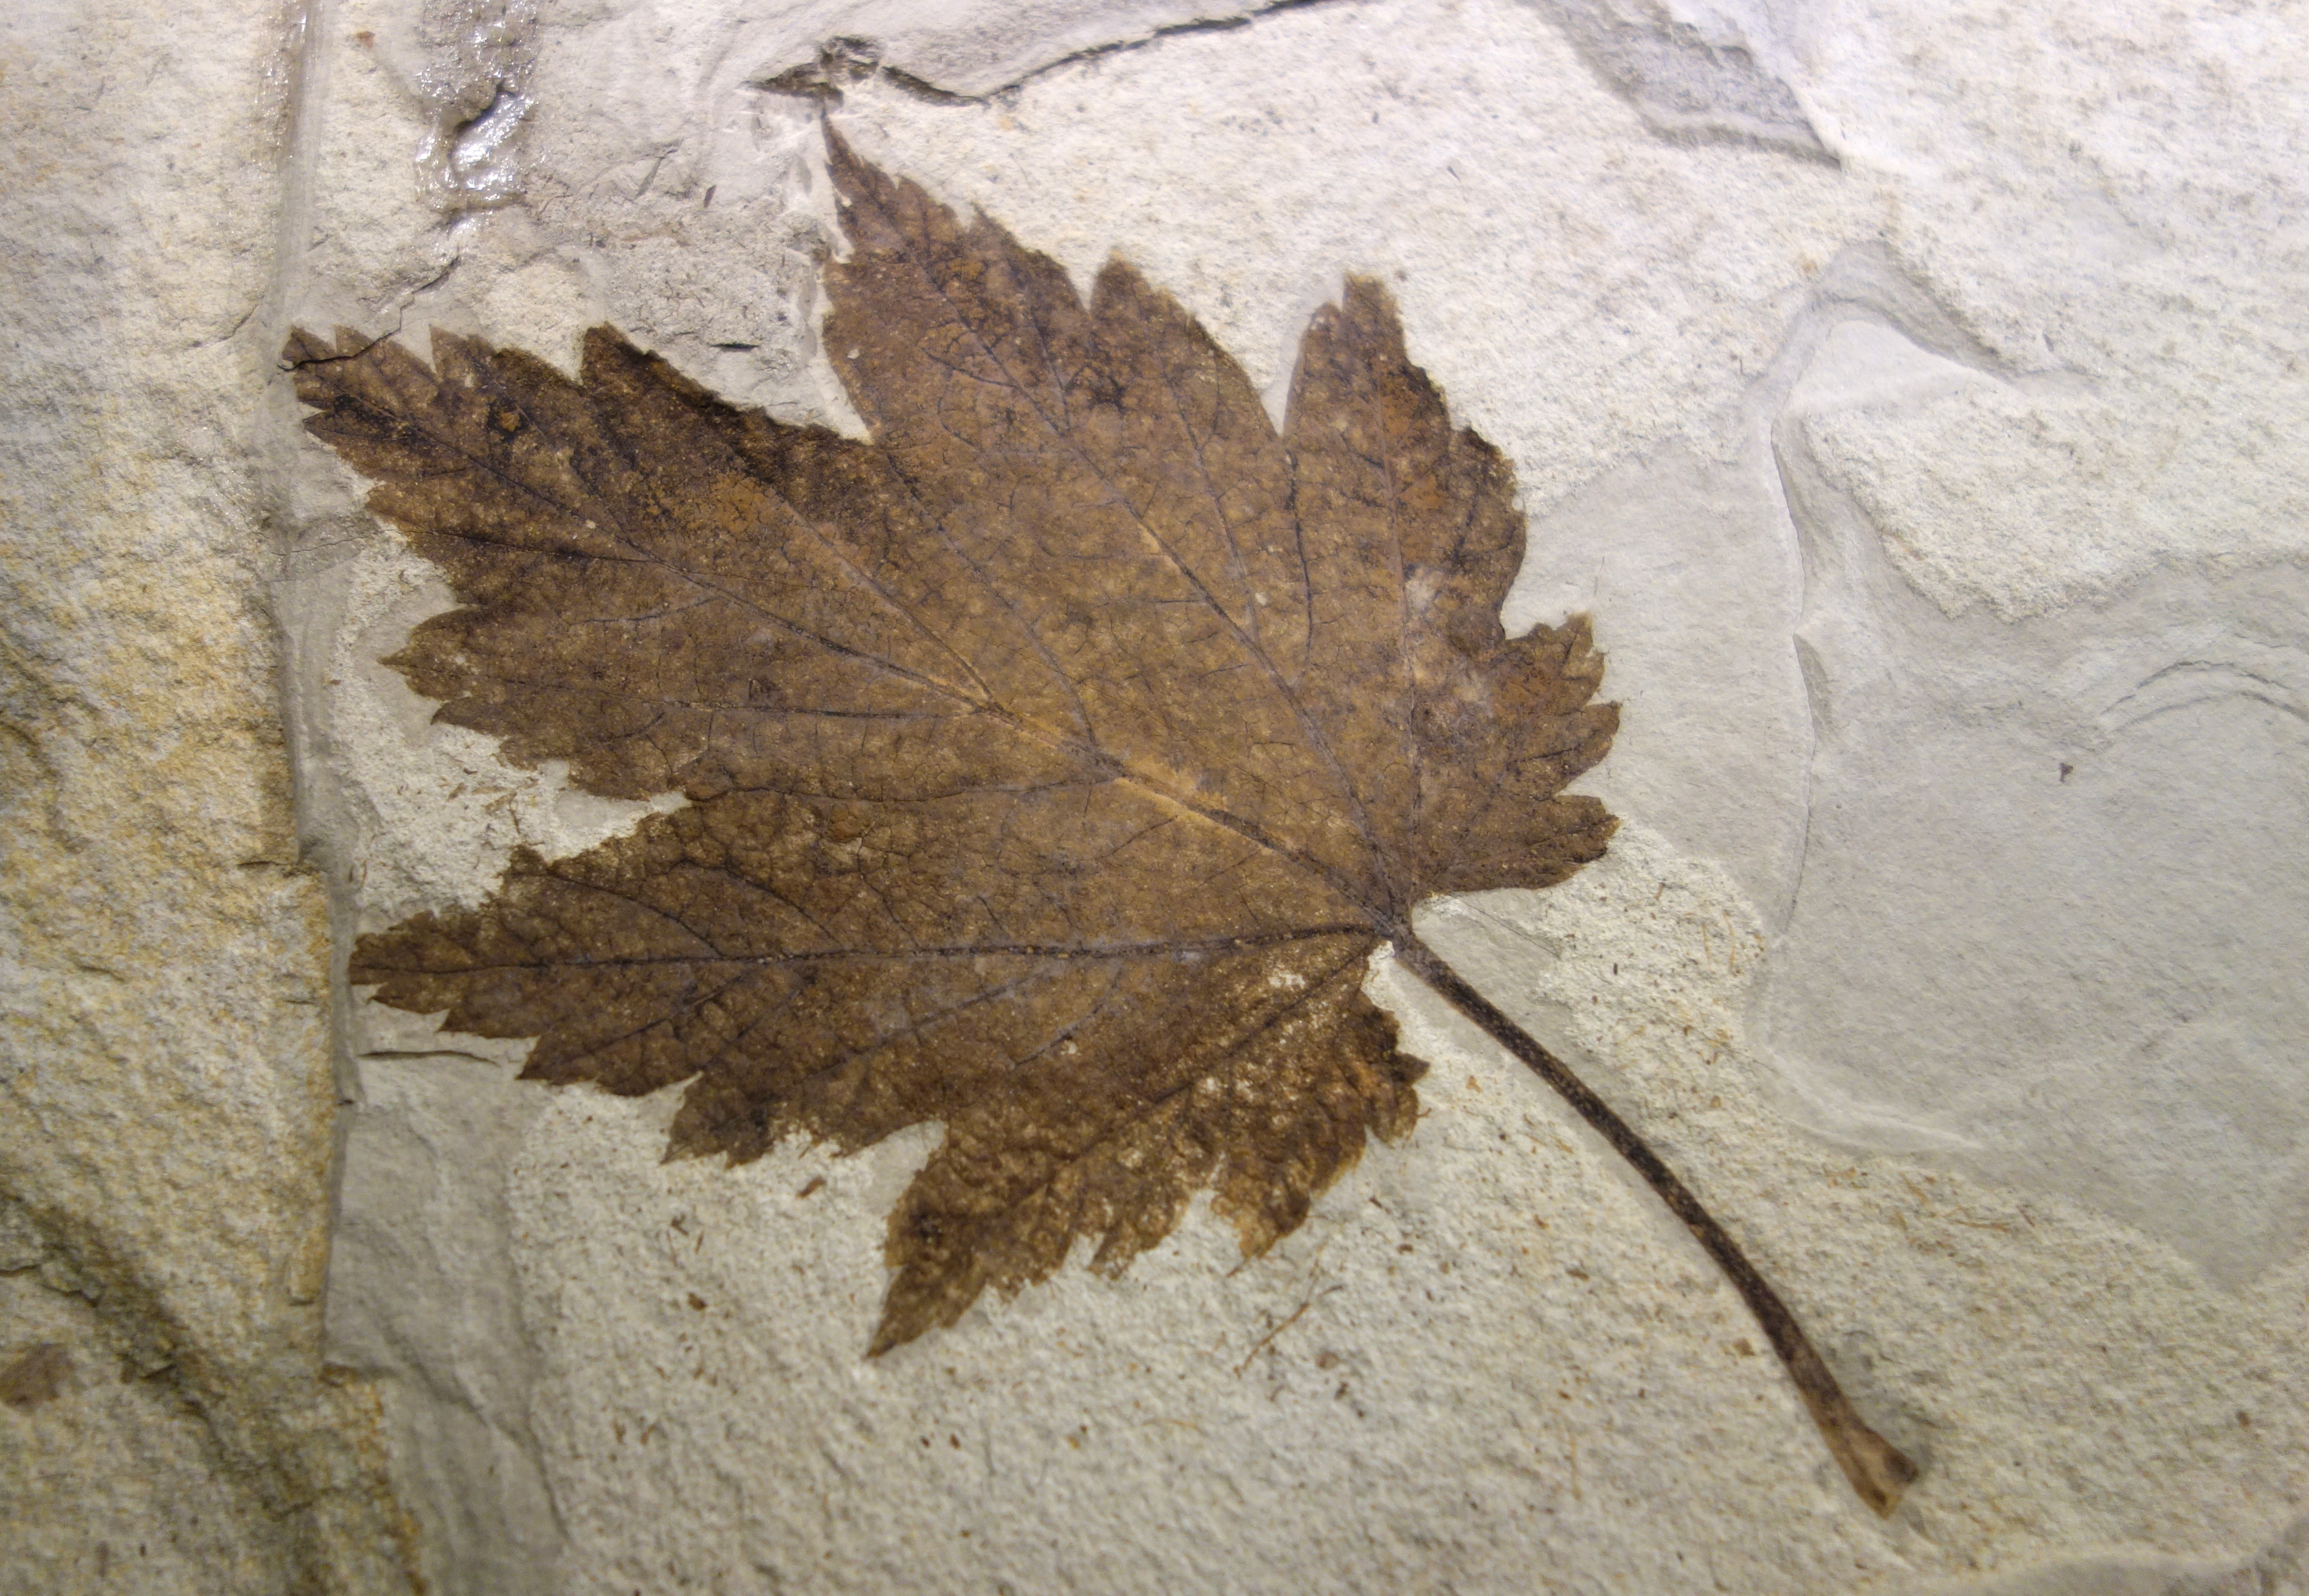 Fosili - Page 3 Acer_subukurunduense_%28fossil_leaf%29_-_National_Museum_of_Nature_and_Science%2C_Tokyo_-_DSC06789